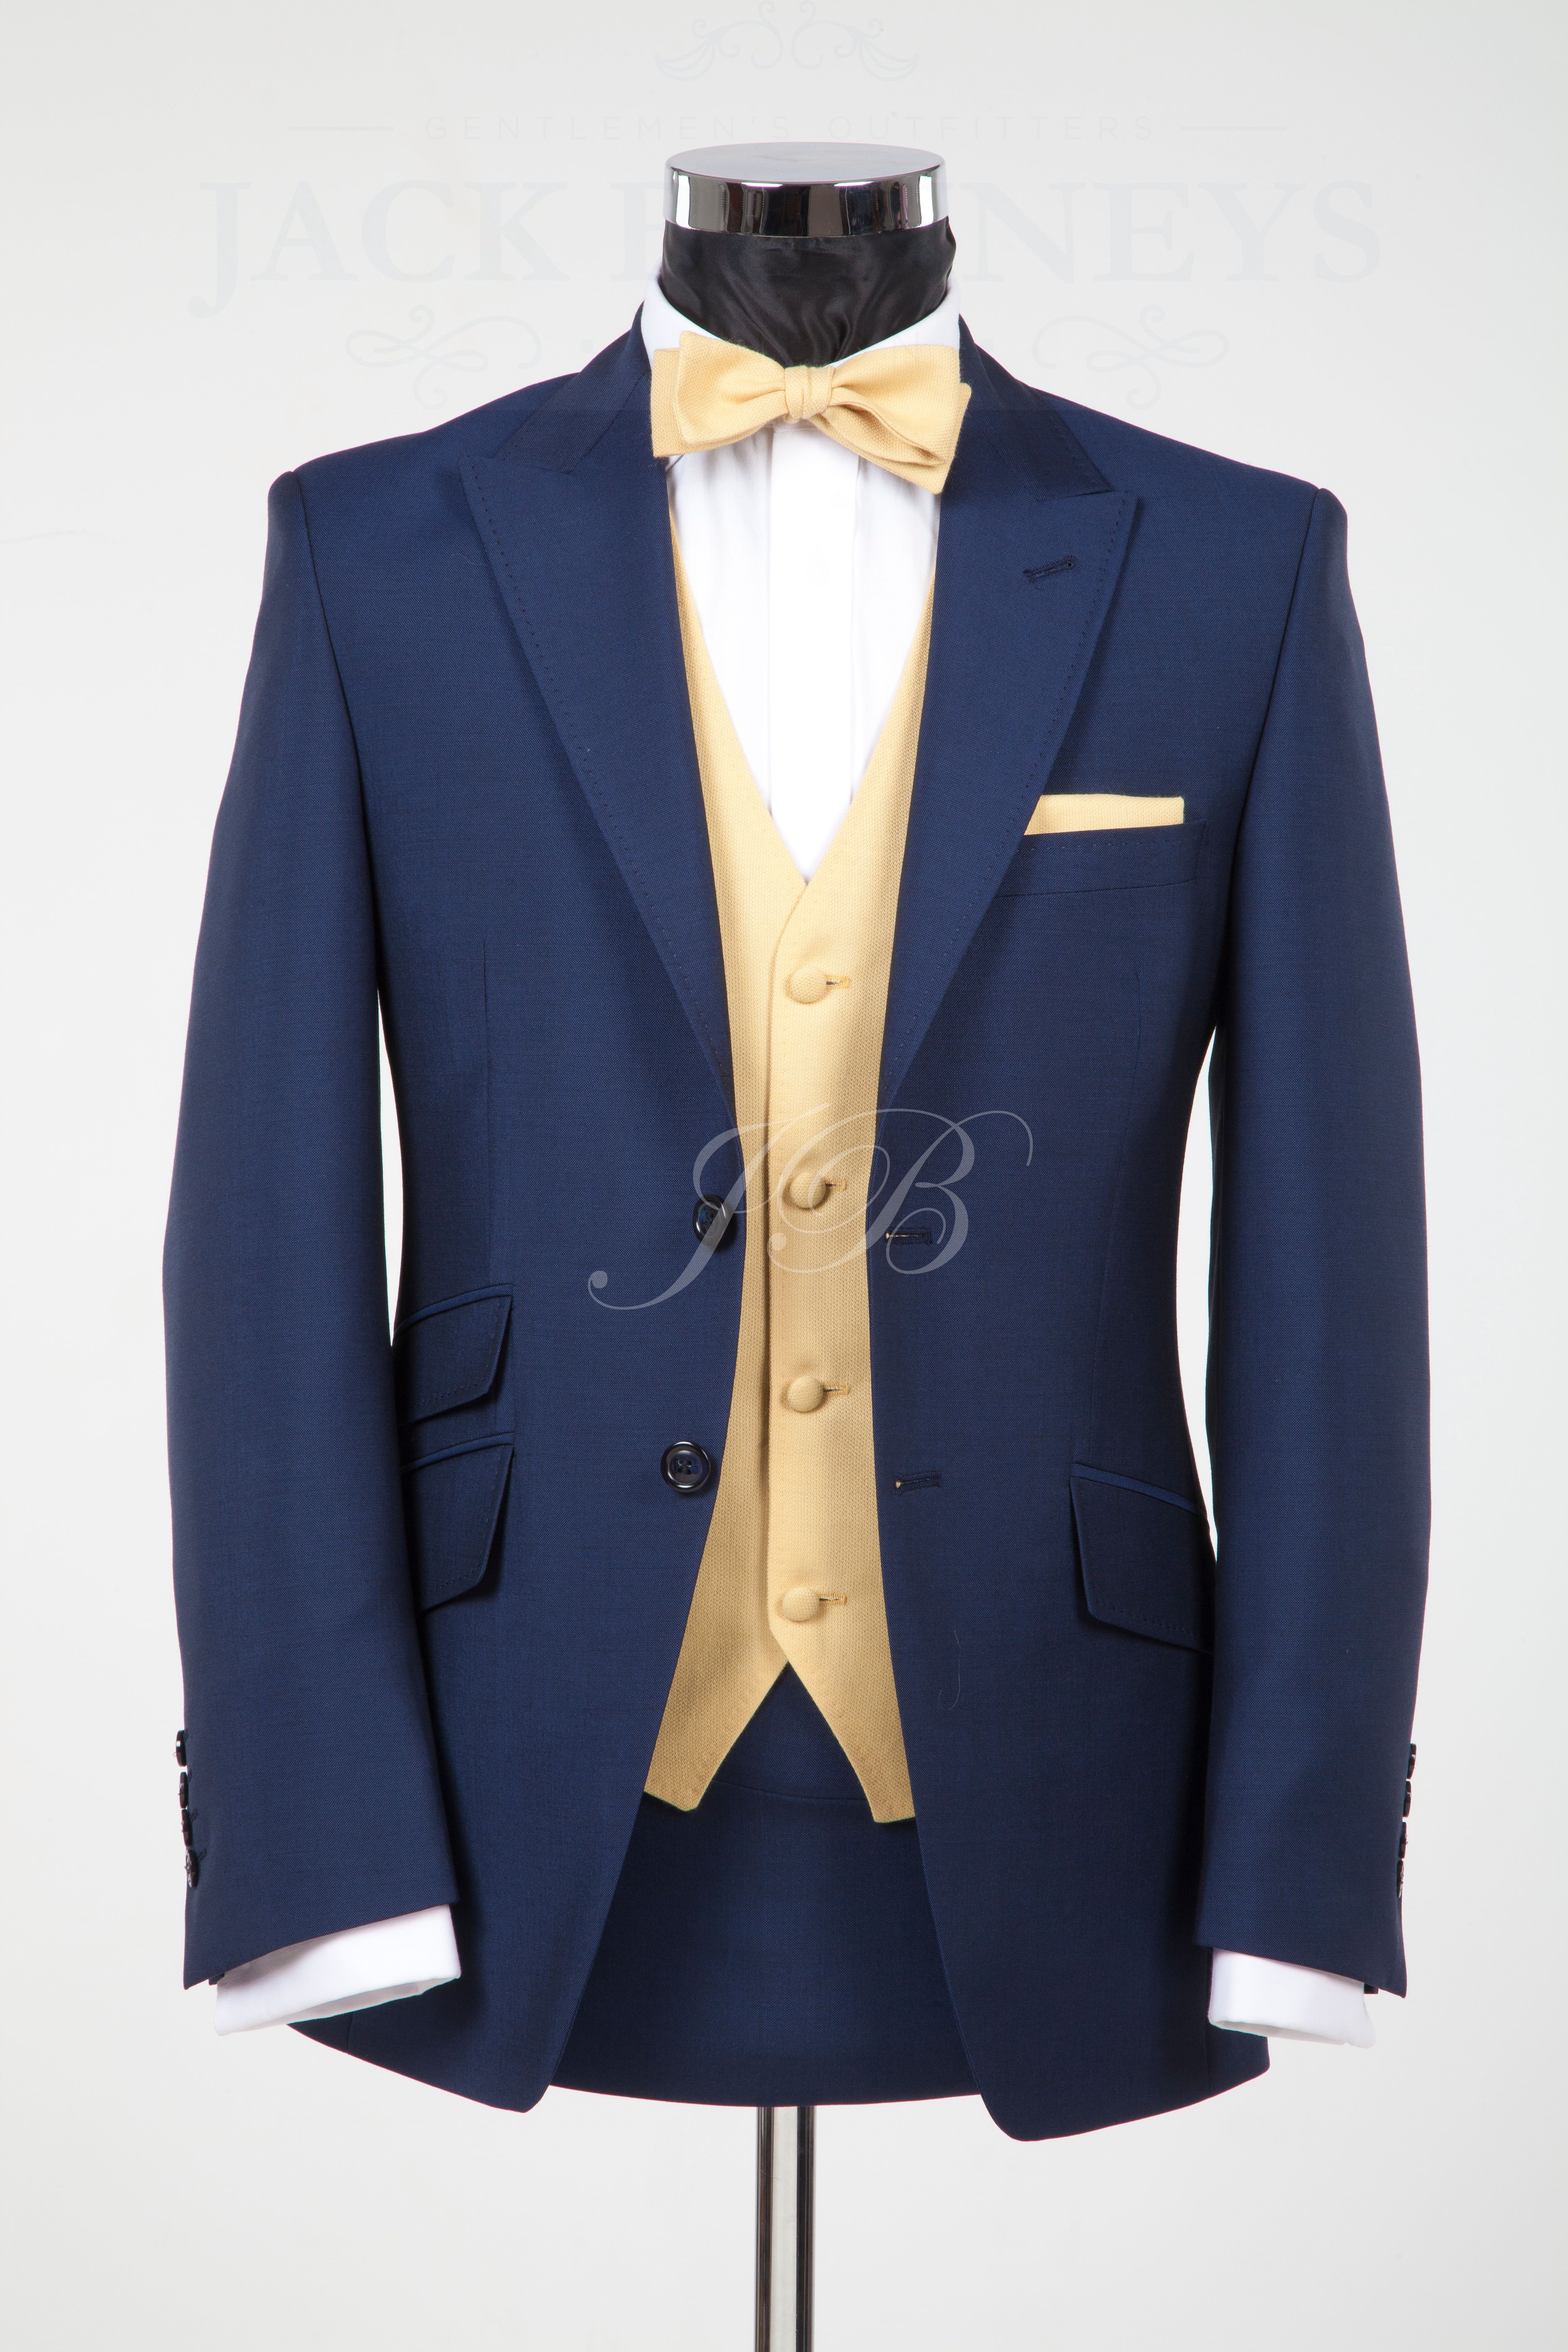 Blue York with bow tie – from Jack Bunneys 3